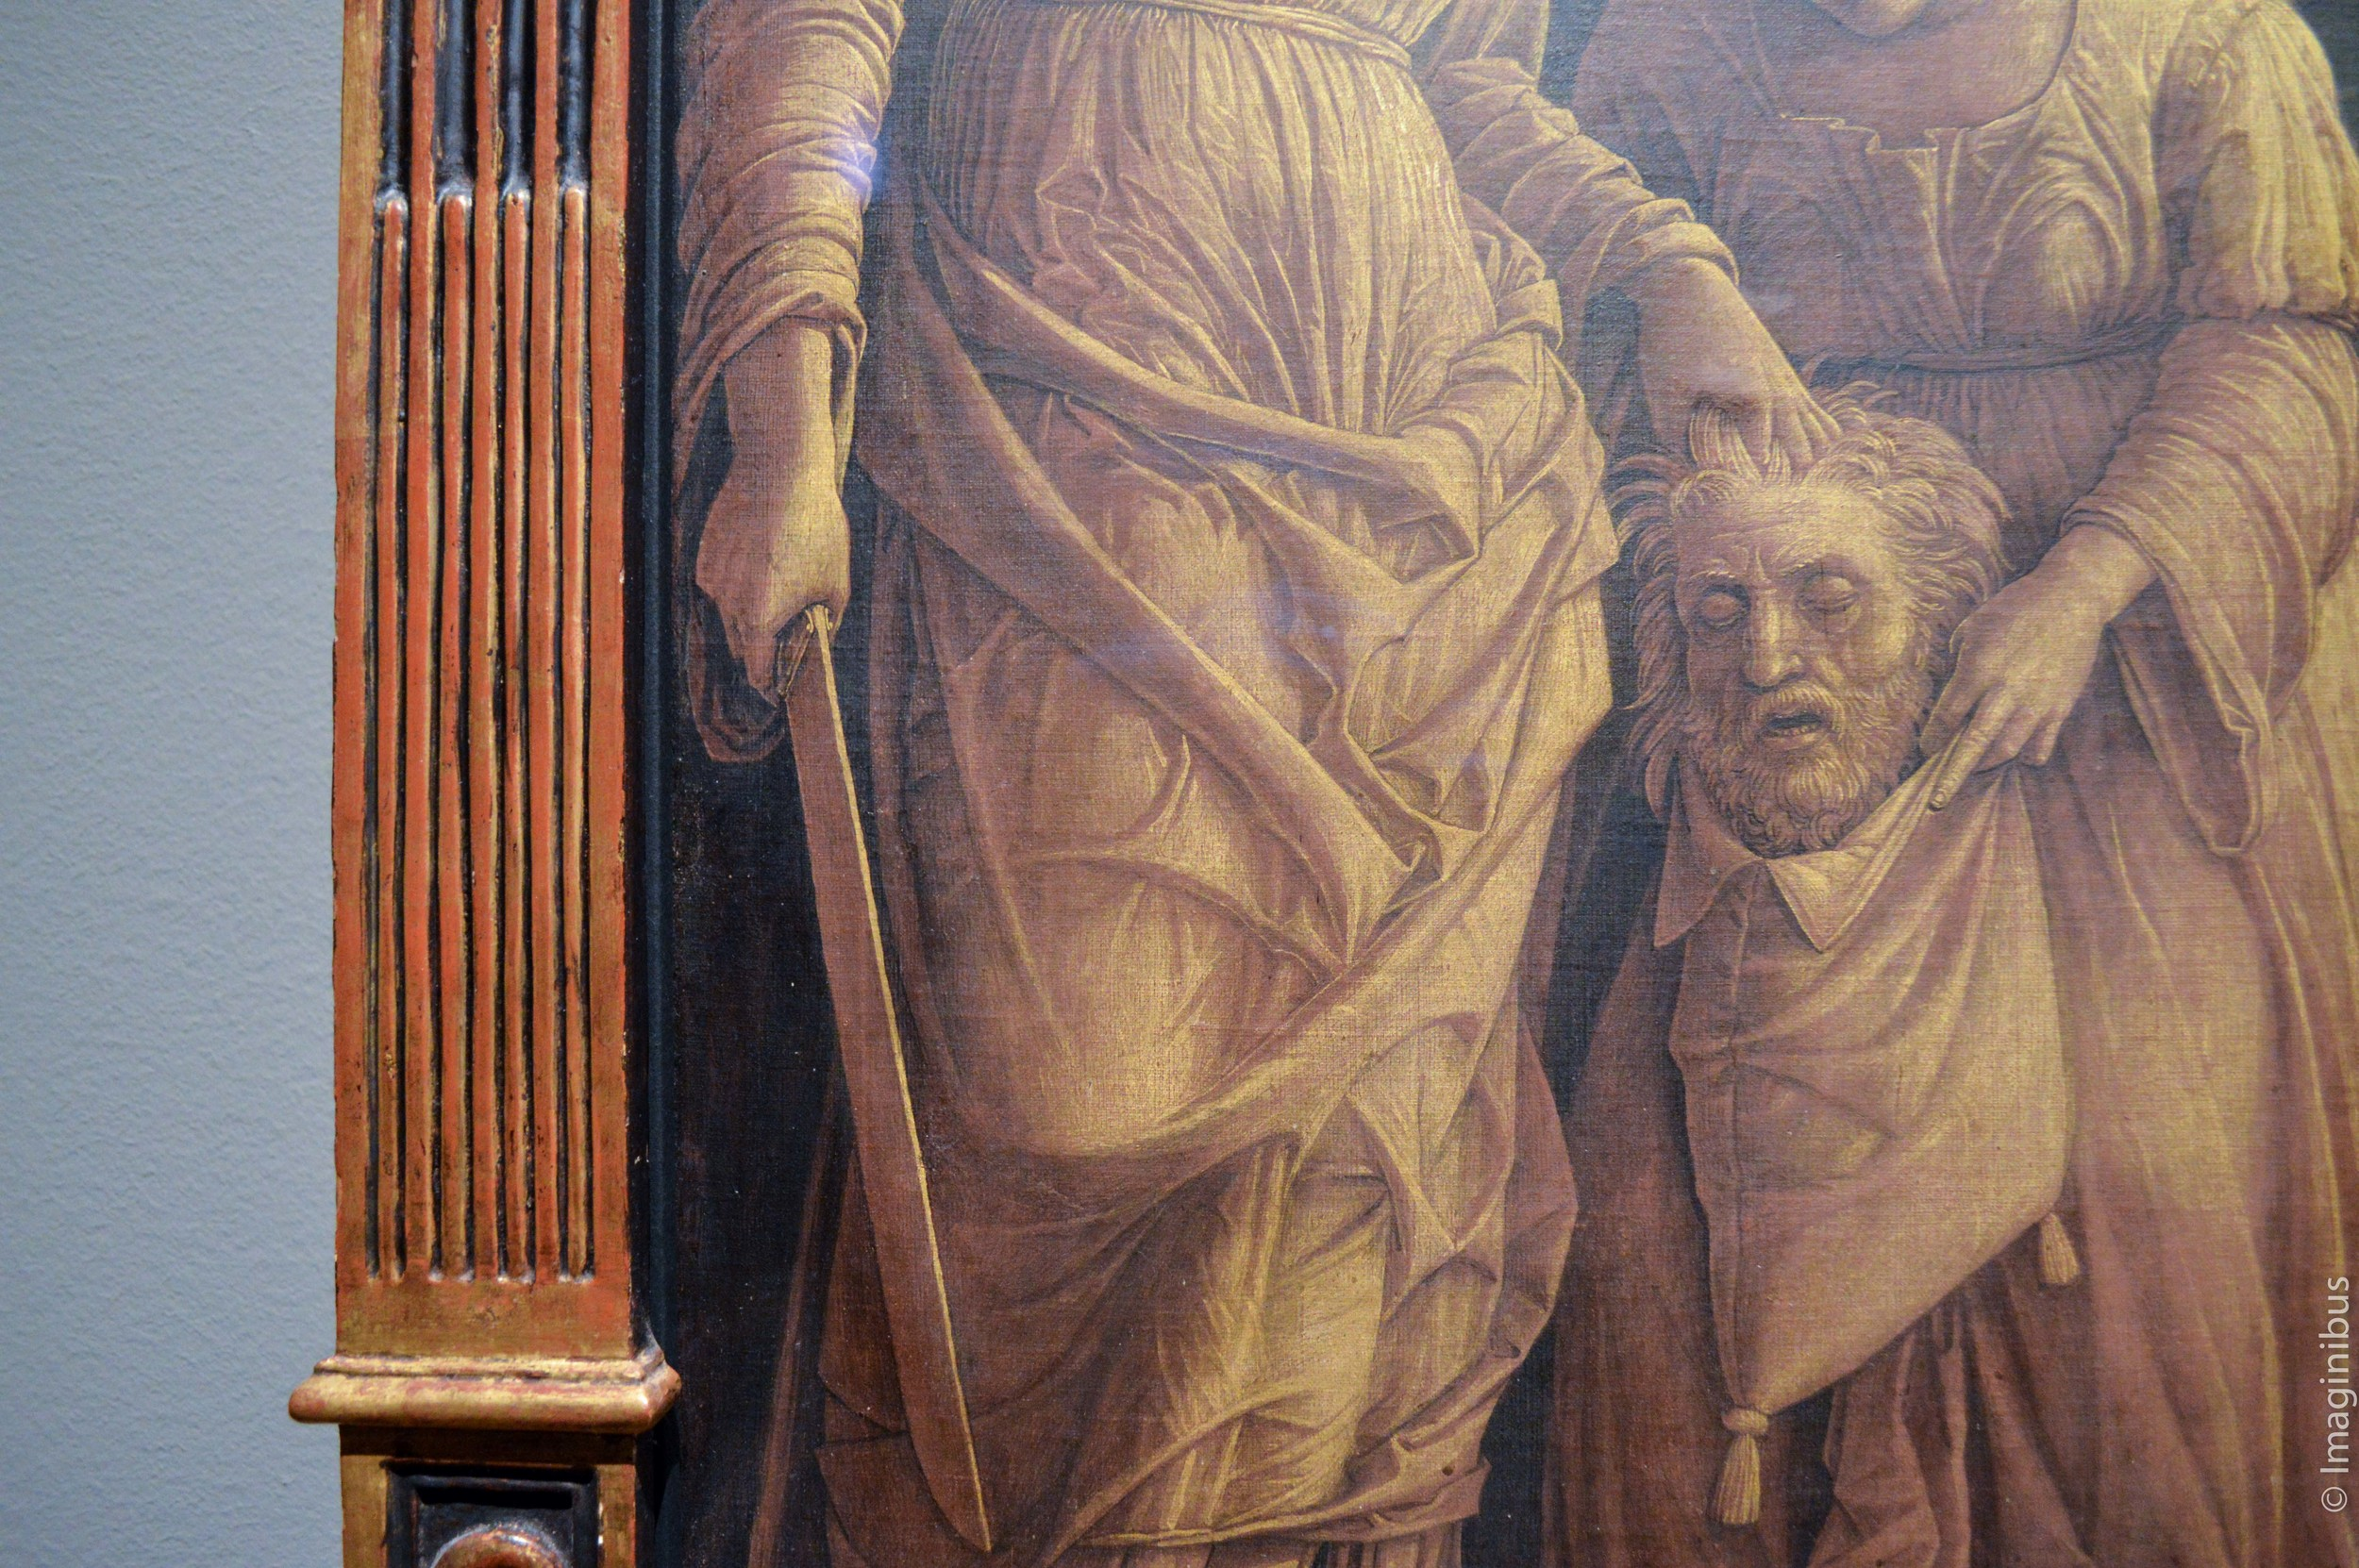 Montreal Museum of Fine Arts, Mantegna, Judith with the Head of Holofernes